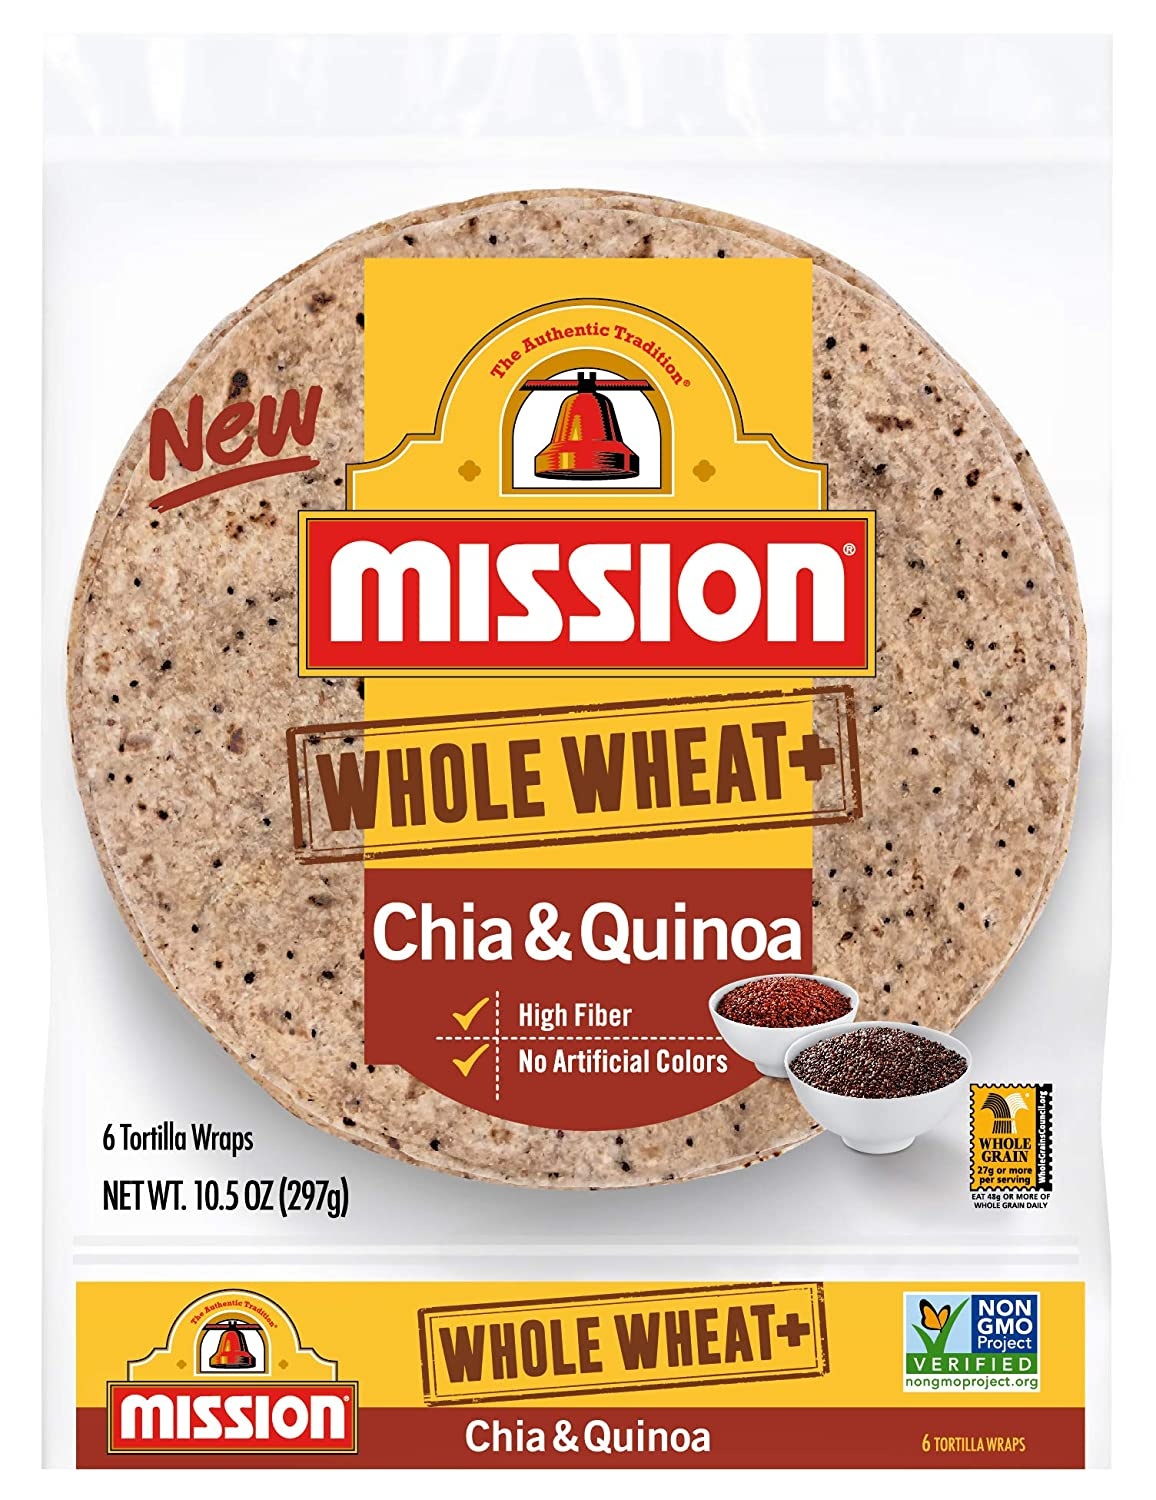 Mission, Whole Wheat + Chia and Quinoa Tortilla Wraps, 6 ct